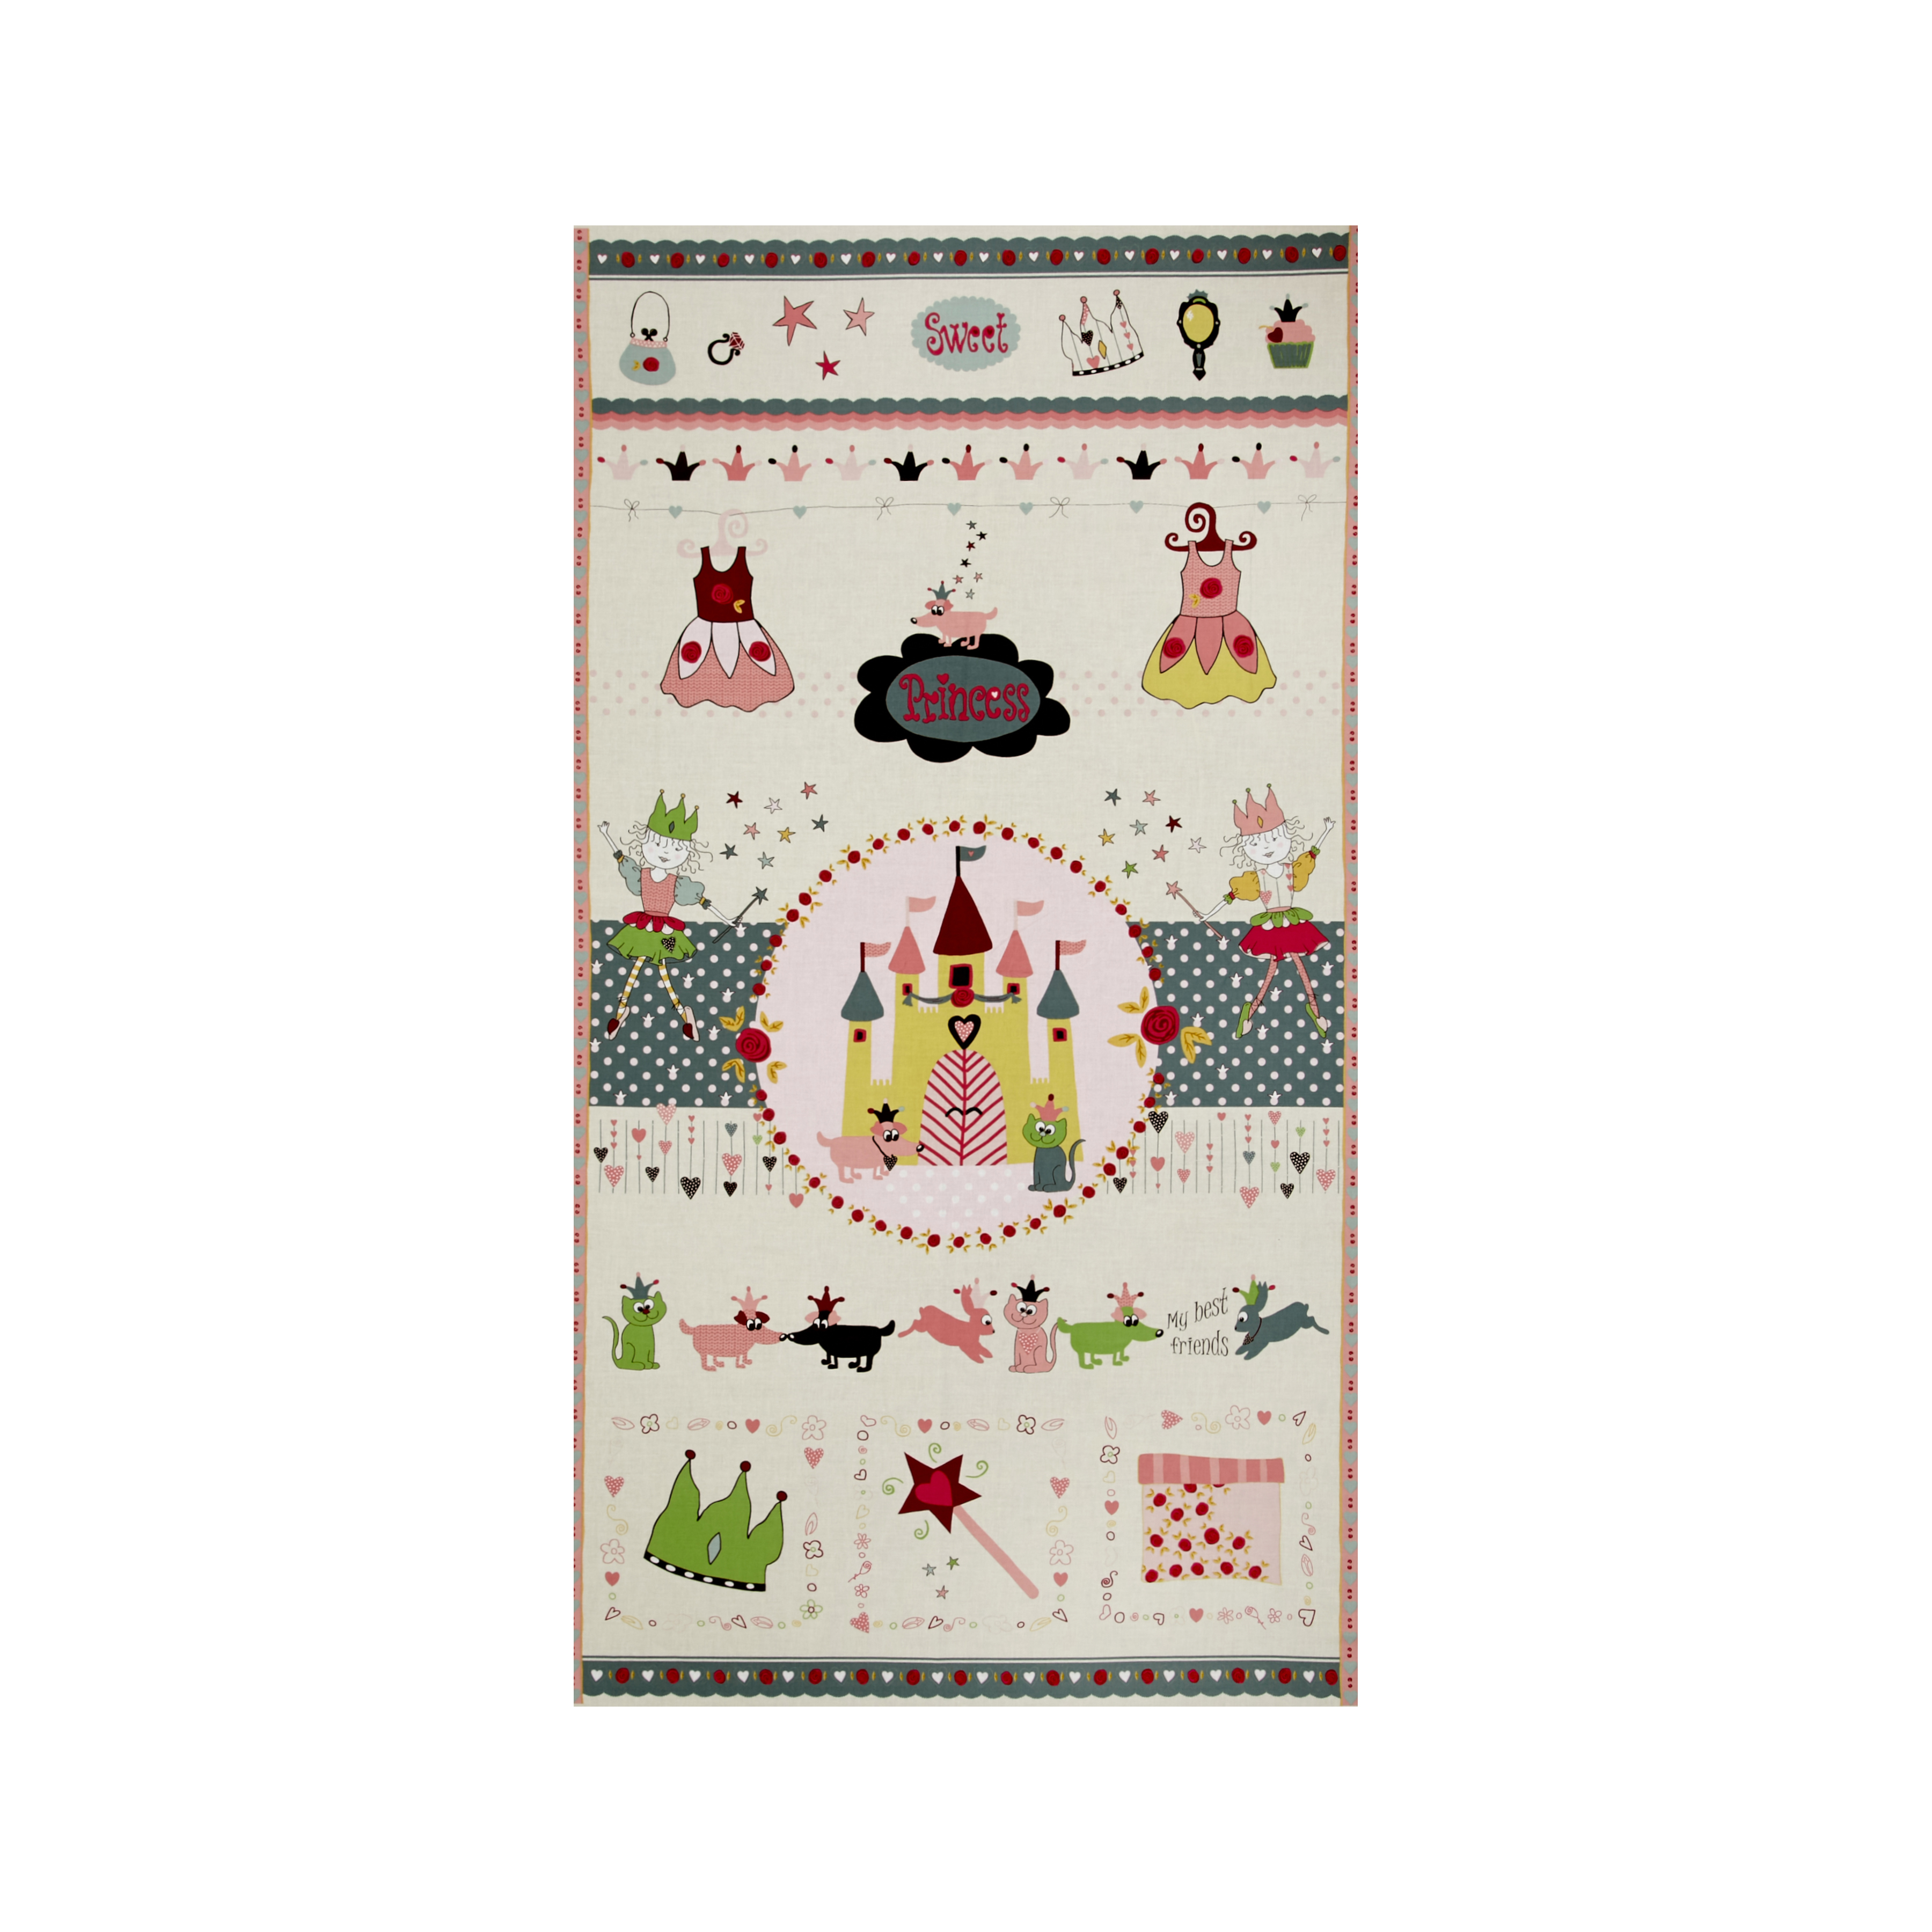 Sweet Princess 24 In. Panel Green/Pink Fabric by Stardom Specialty in USA